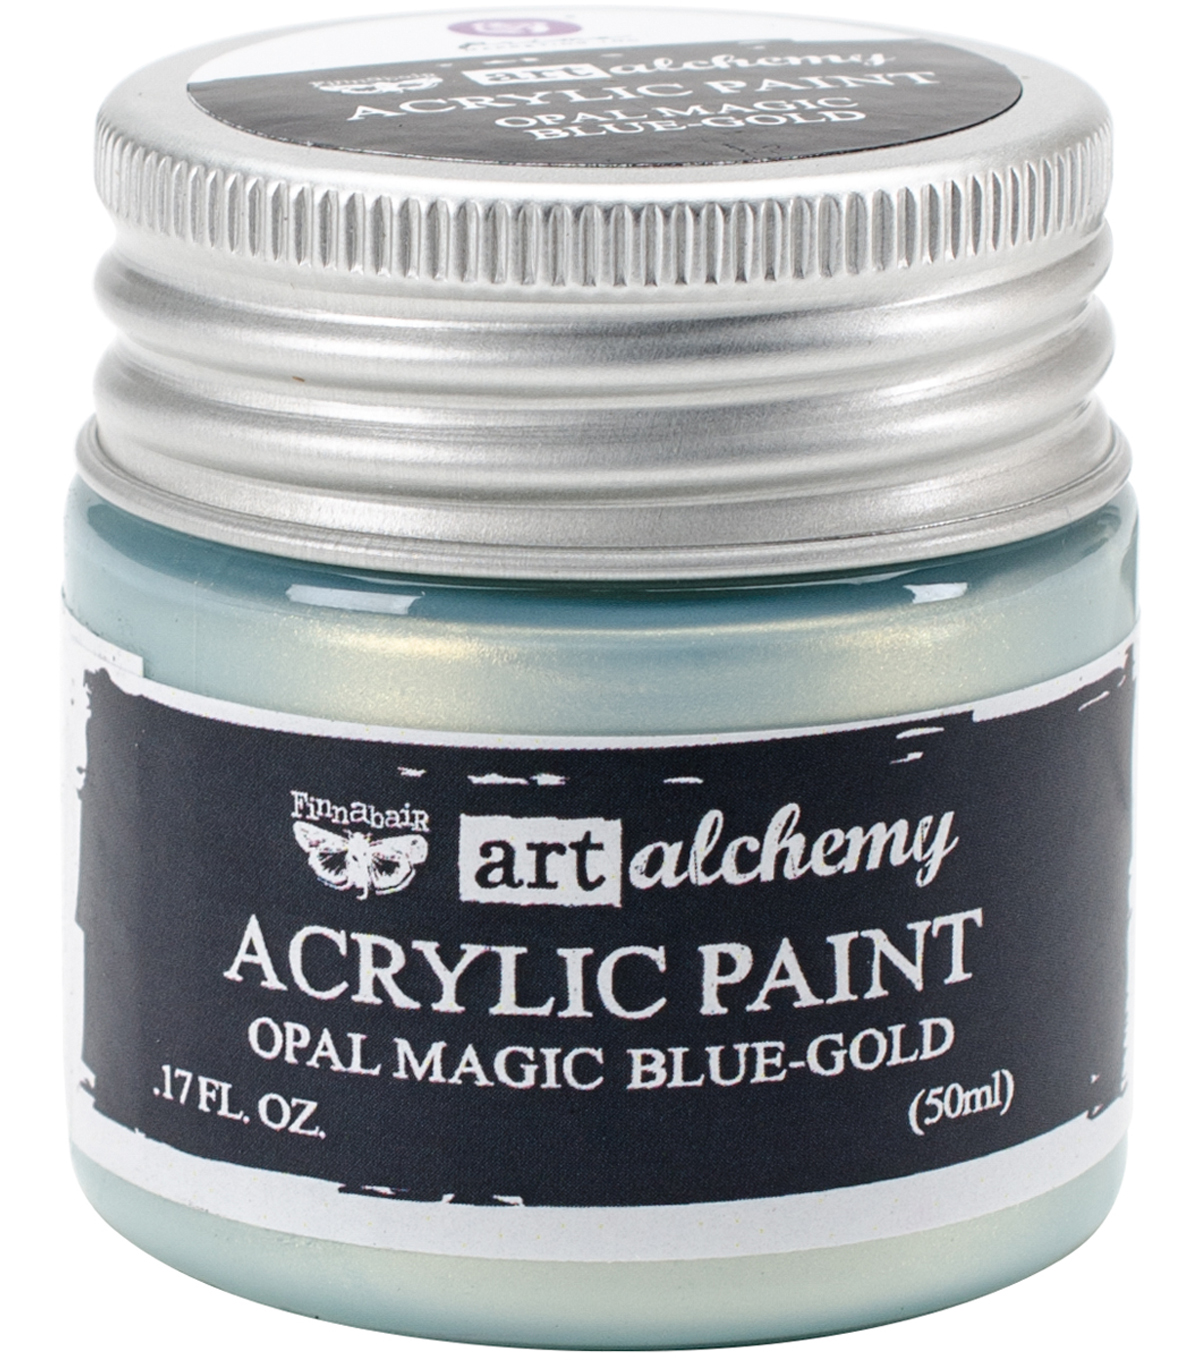 Prima Marketing Art Alchemy 1.7 oz. Acrylic Paint-Opal Magic Blue-Gold